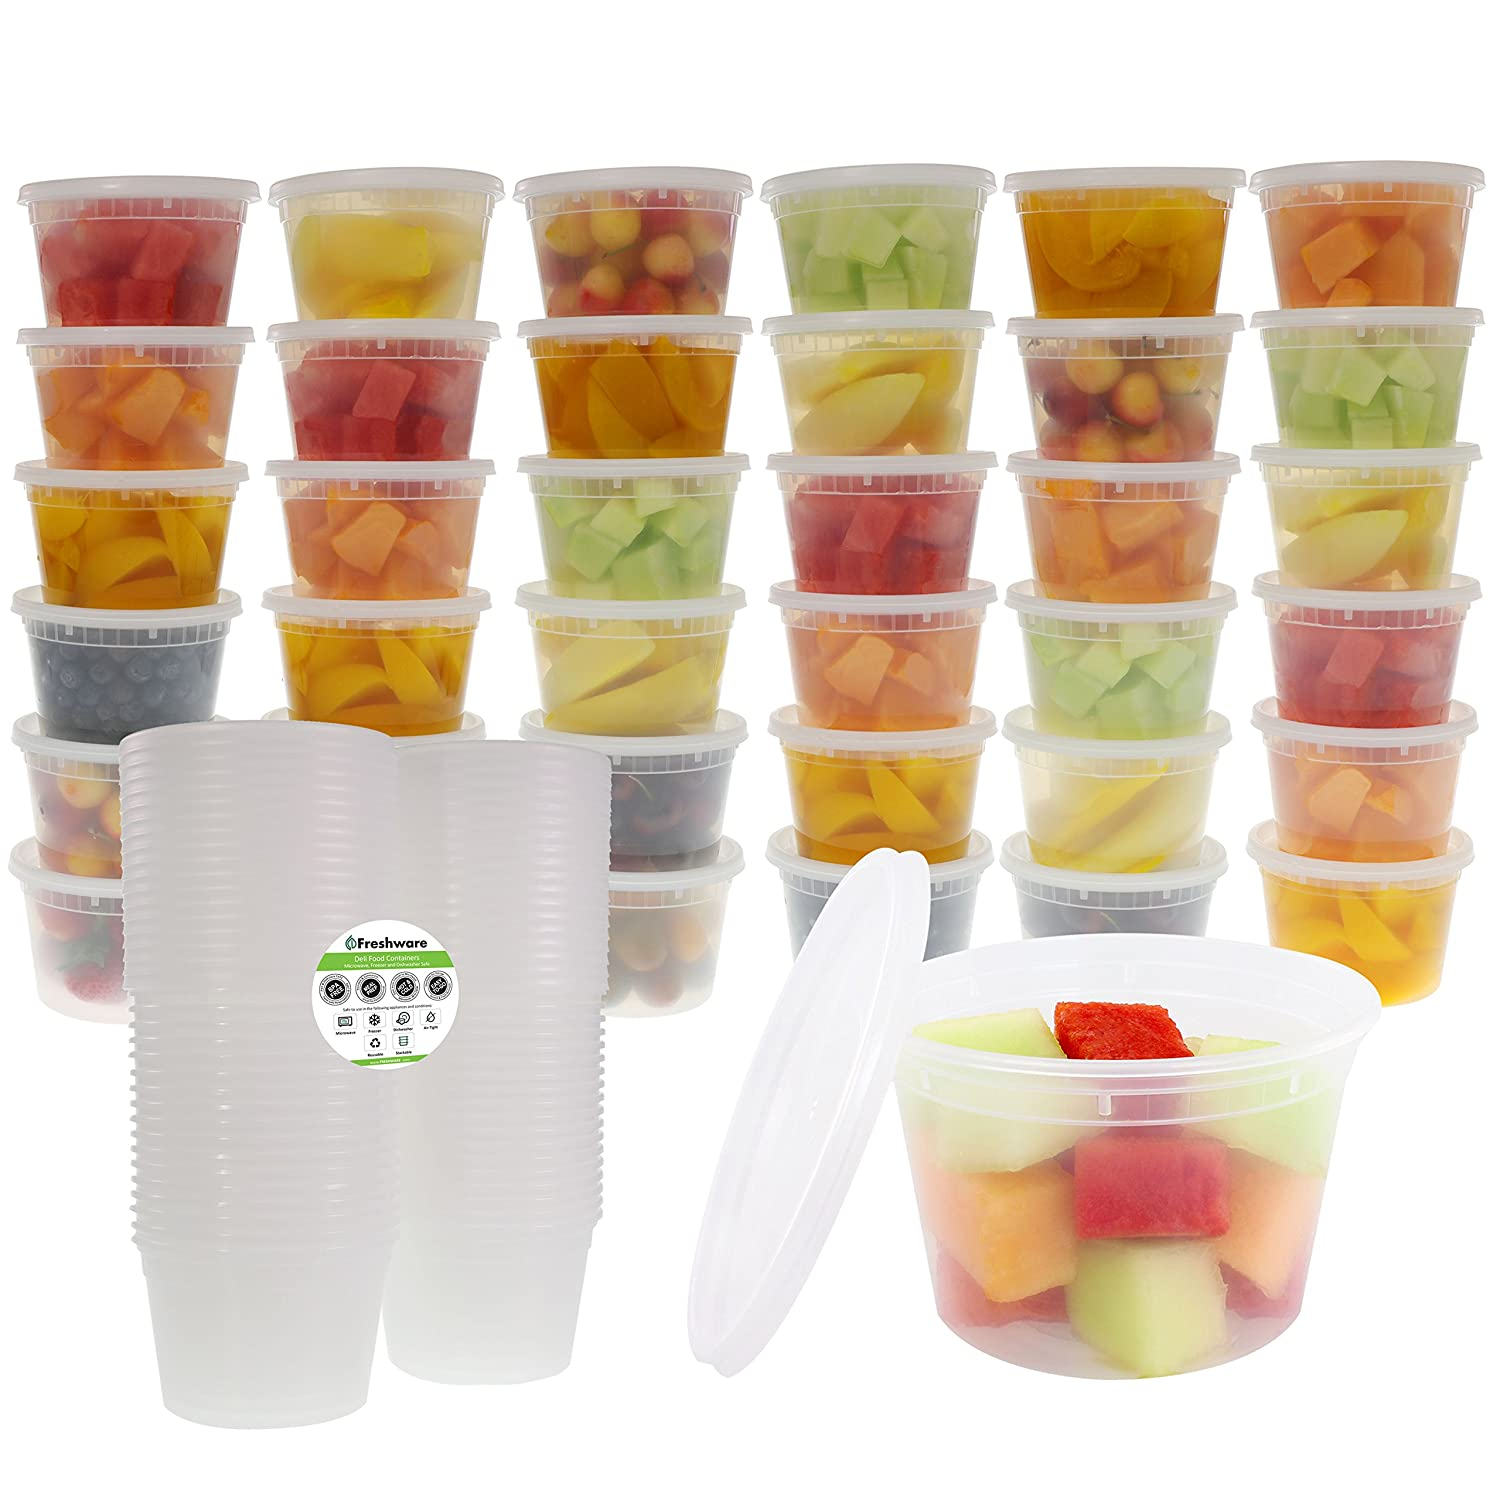 Freshware 36 Pack 16 Oz Plastic Food Storage Containers